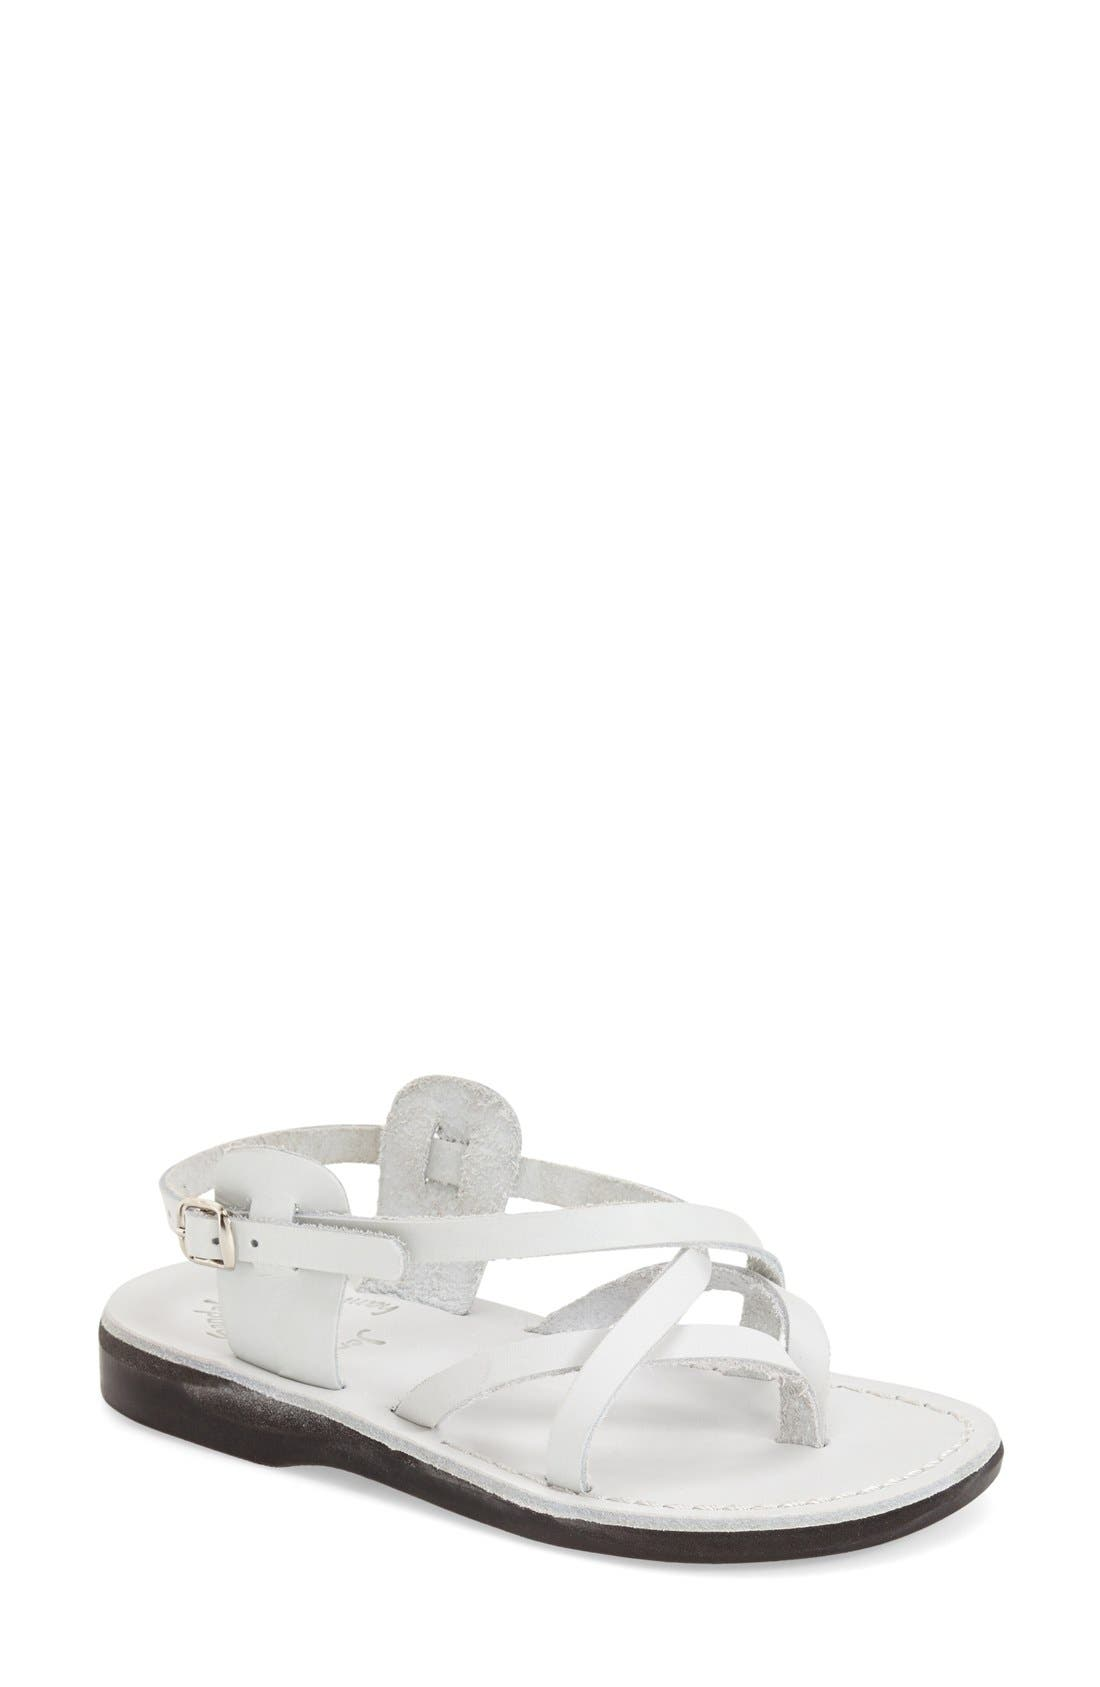 'Tamar' Strappy Sandal,                         Main,                         color, White Leather